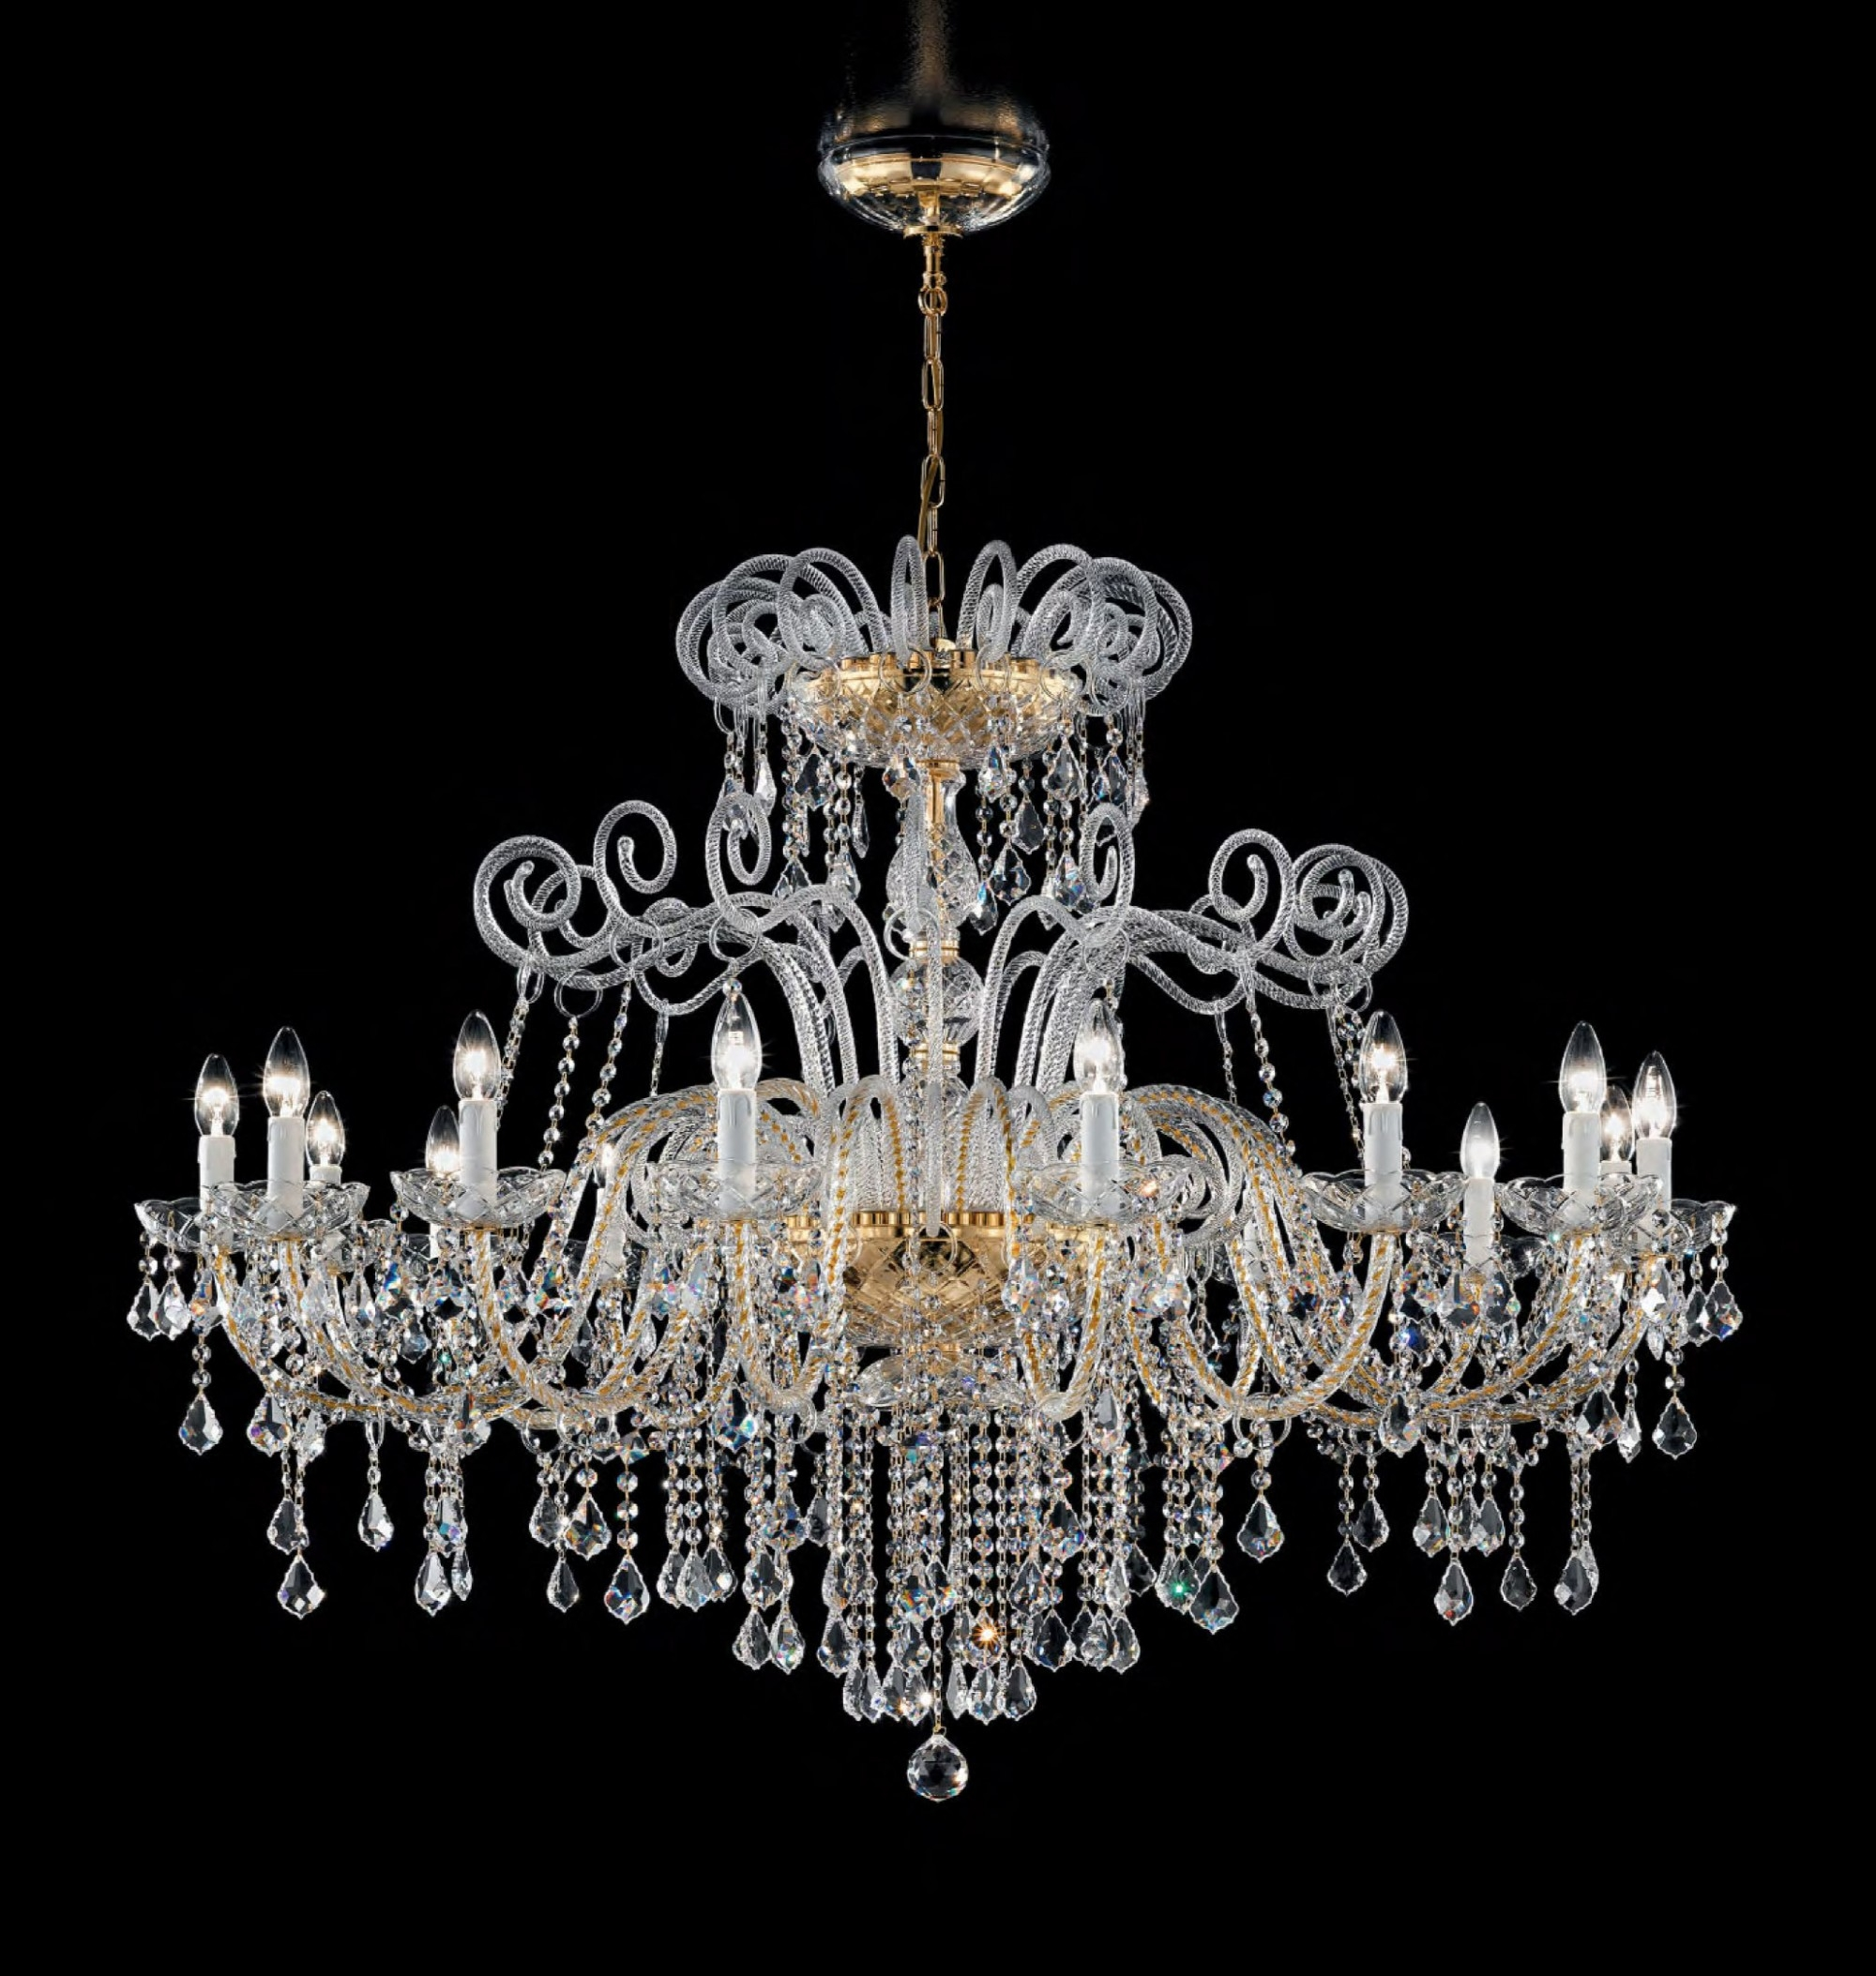 Antique Style Murano Glass Swarovski Crystals Chandelier Syl948k16 Regarding Antique Looking Chandeliers (#3 of 12)